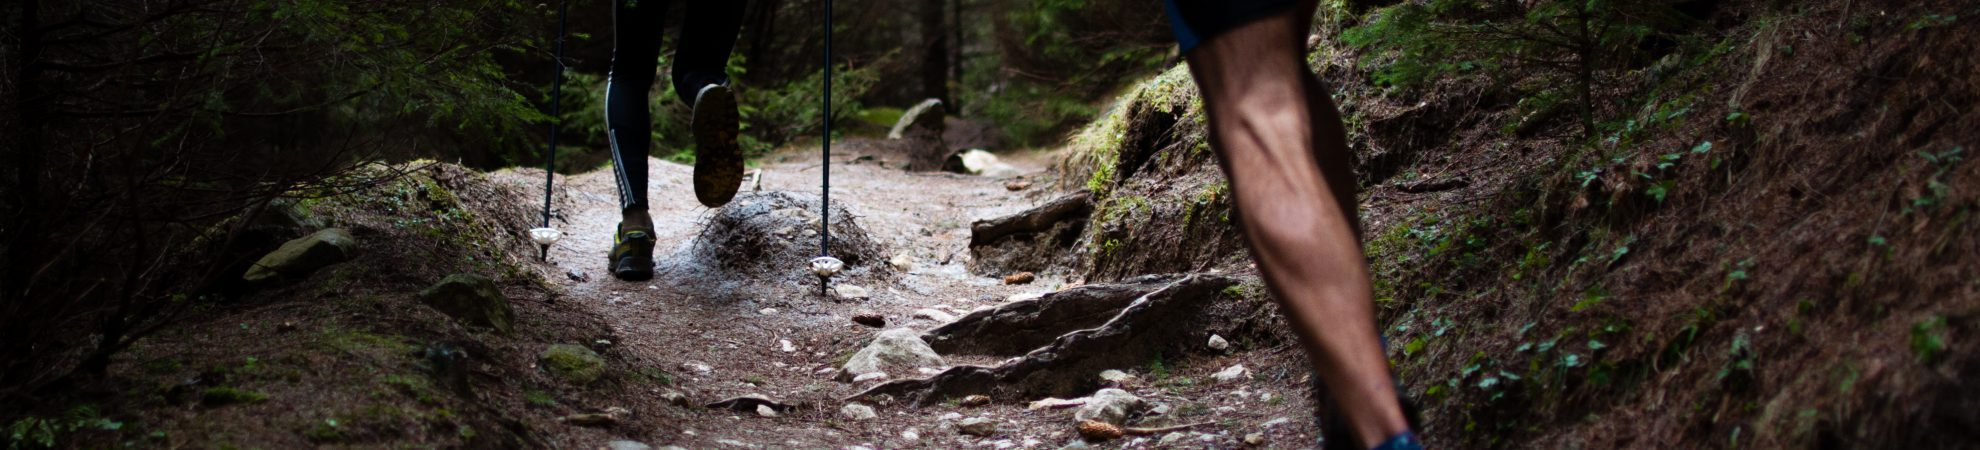 Trail Running: All the Gear you Need to Get Started